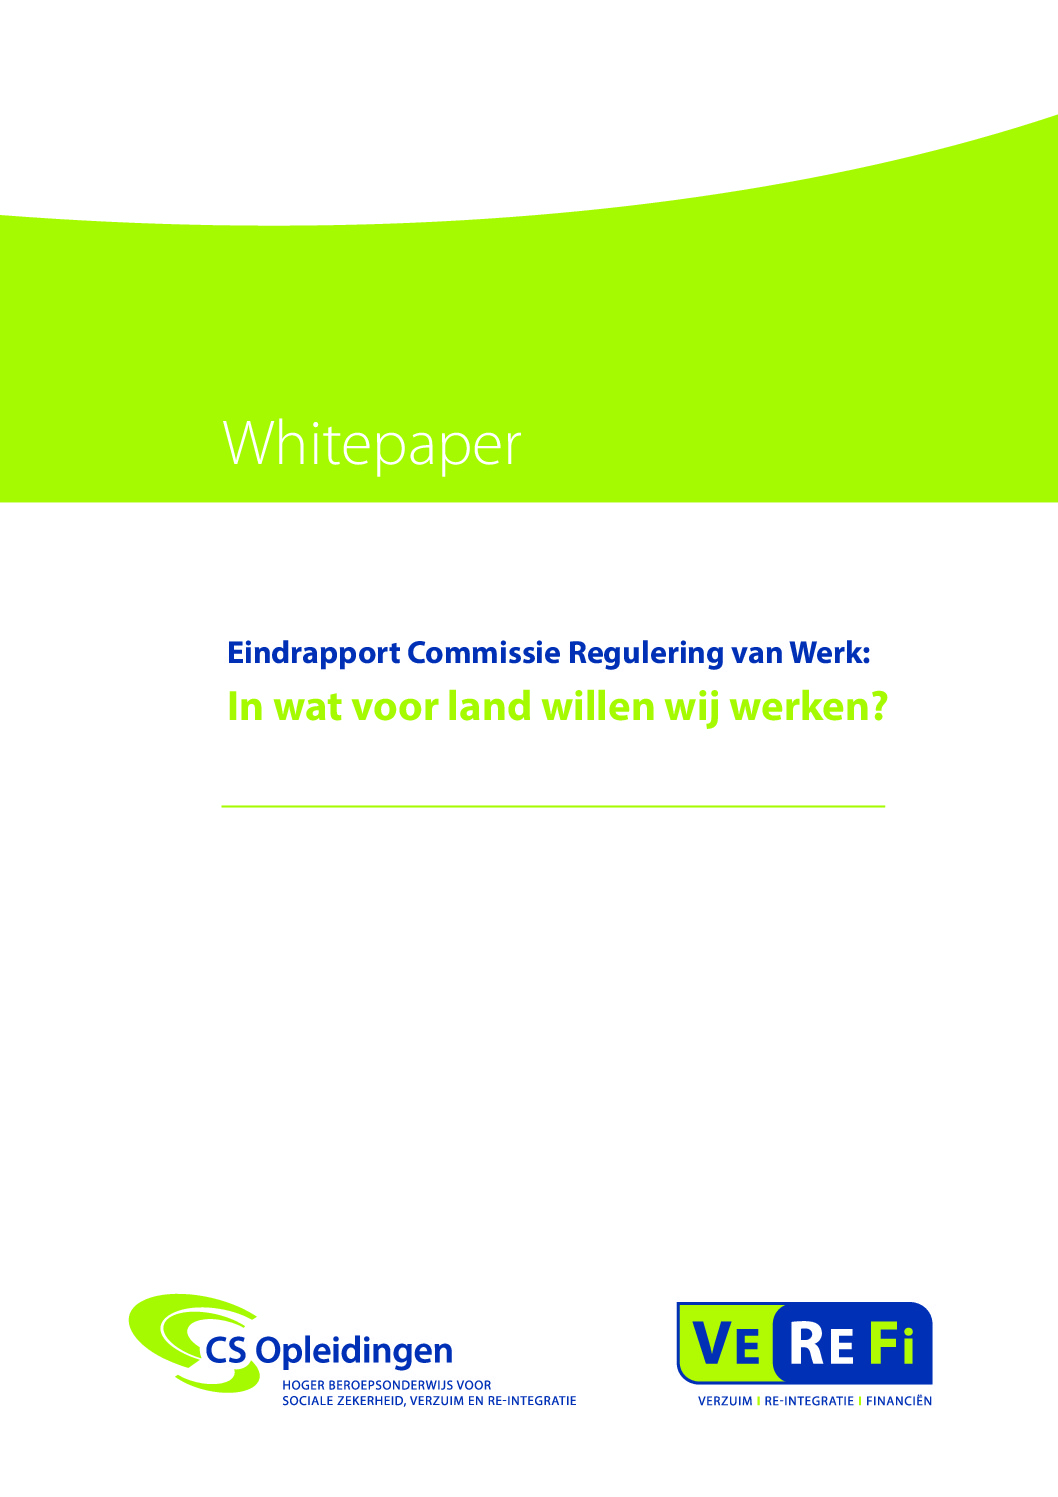 thumbnail of Whitepaper commissie Borstlap v03 sec